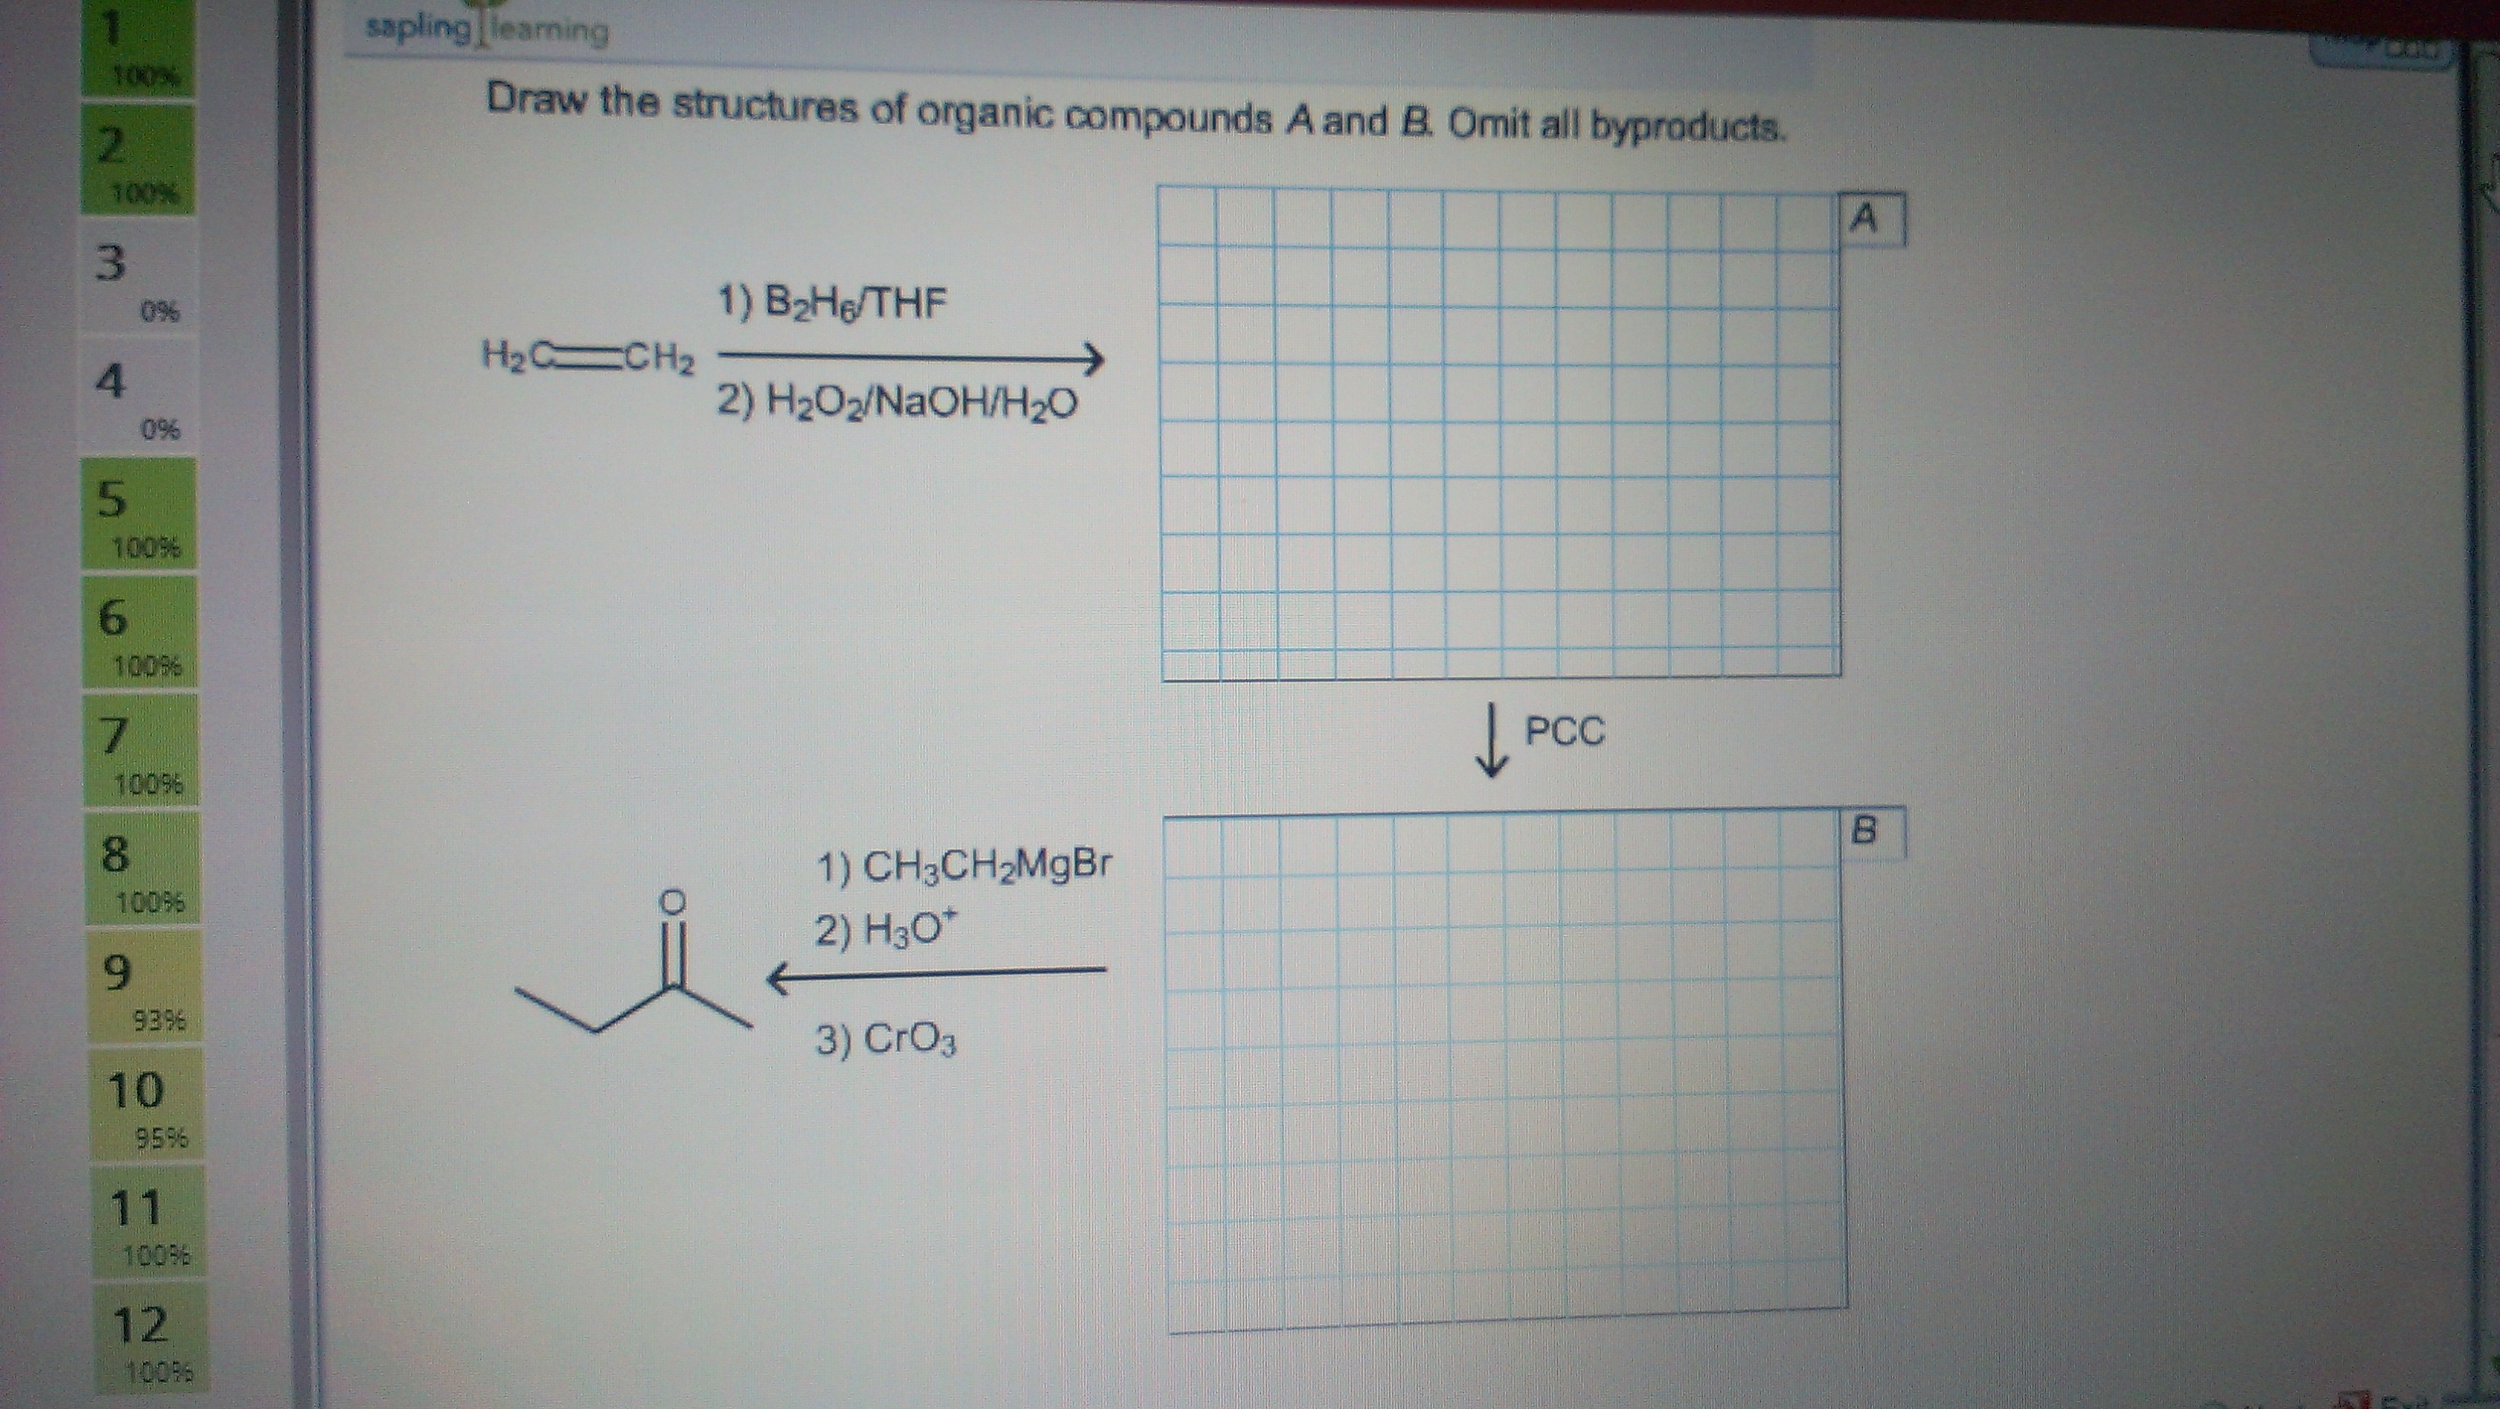 Draw the structures of organic compounds A and B.